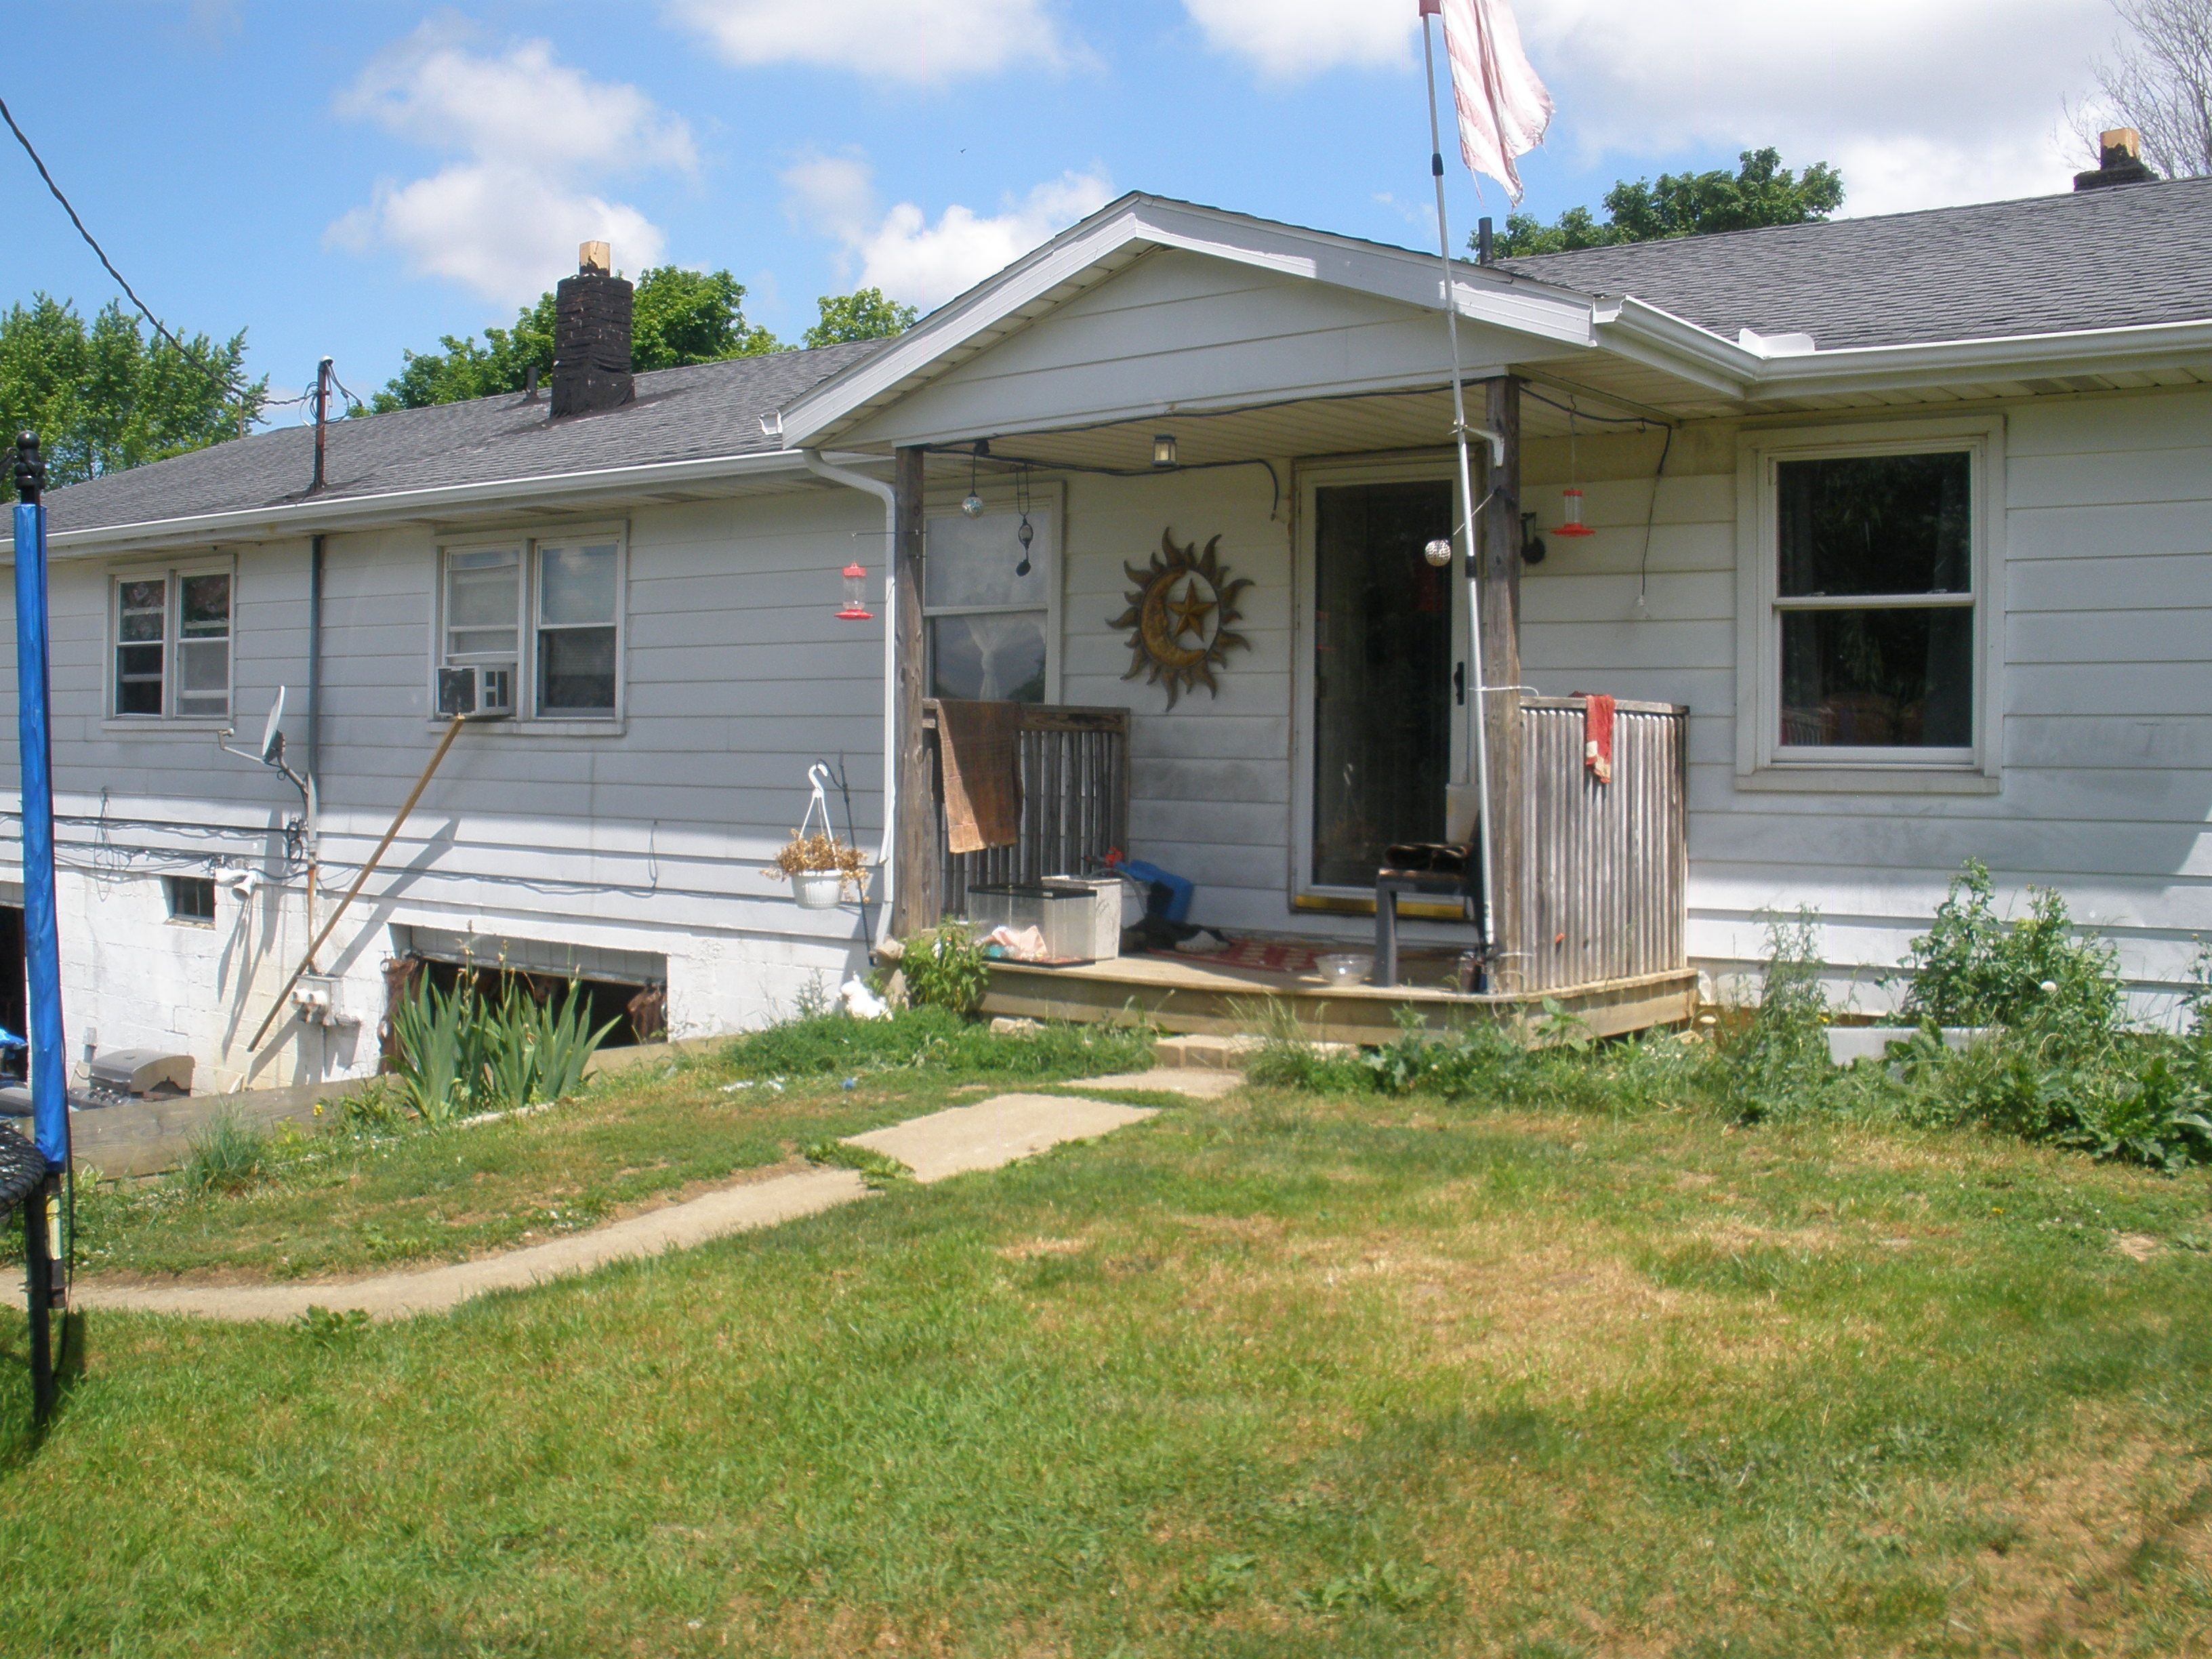 2139-2141 Holtz Rd. (Image - 2)